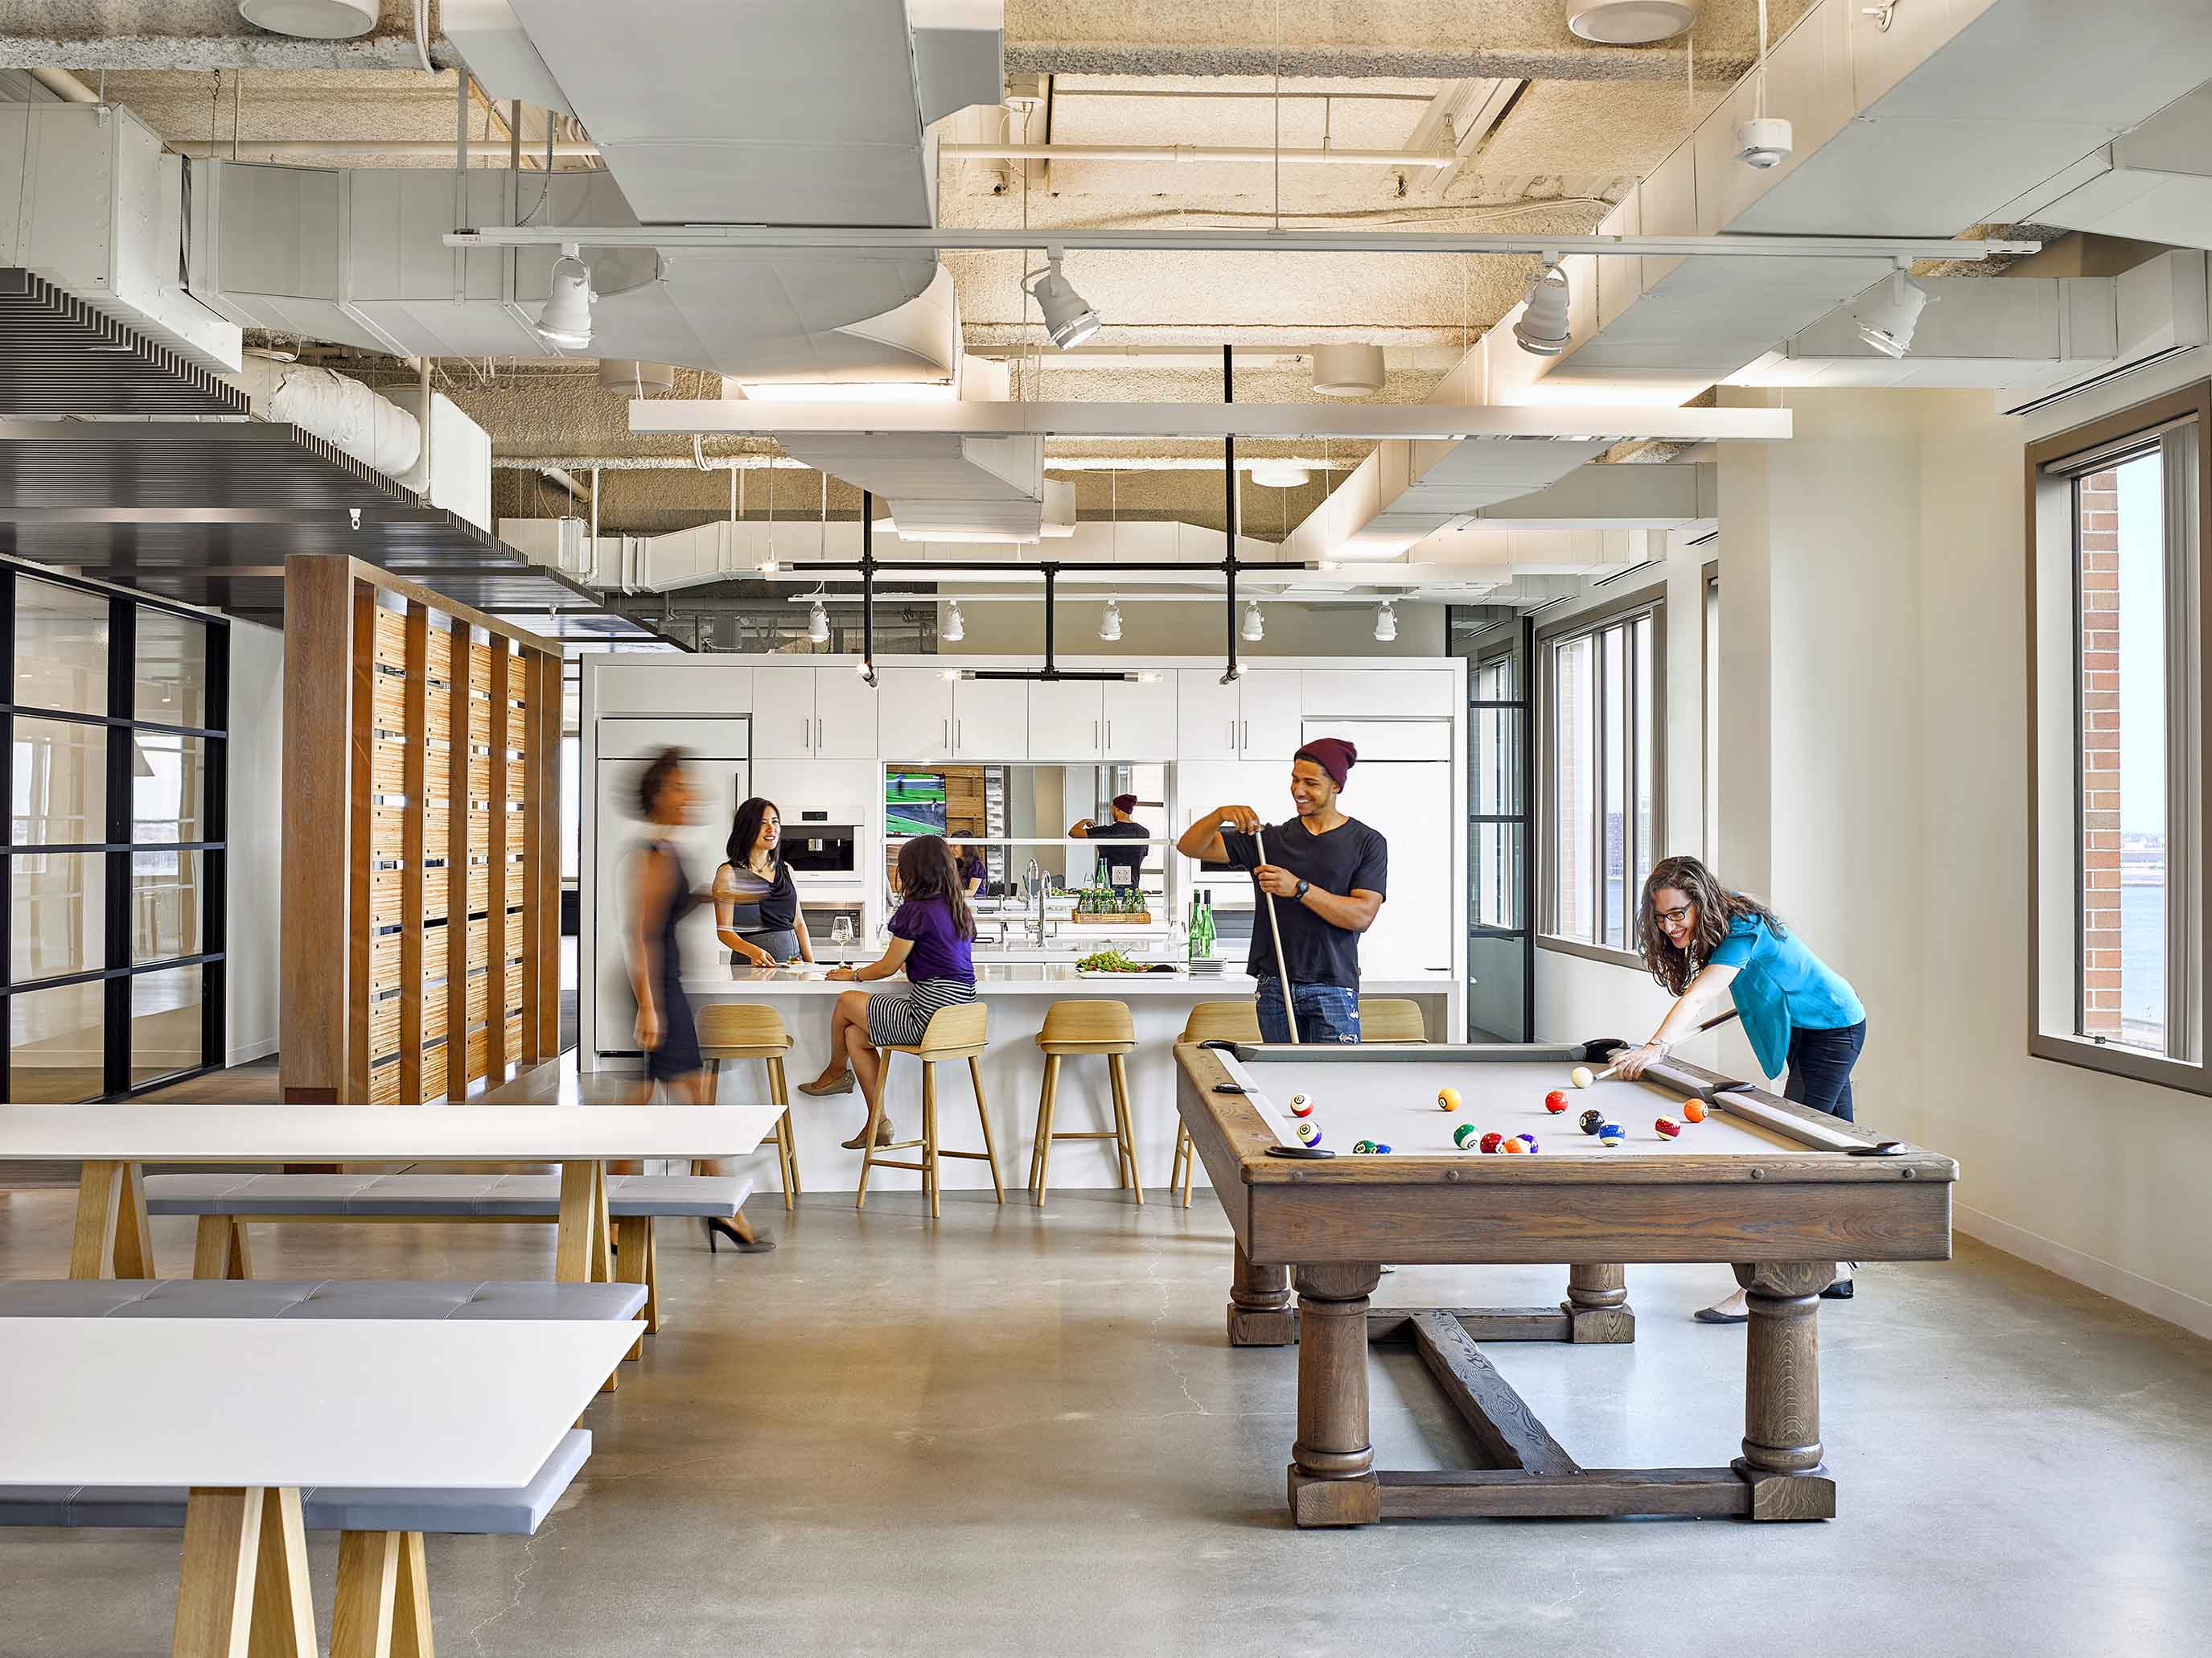 Elkus Manfredi Architects - Potamus Trading for employee wellbeing in interior wellness blog